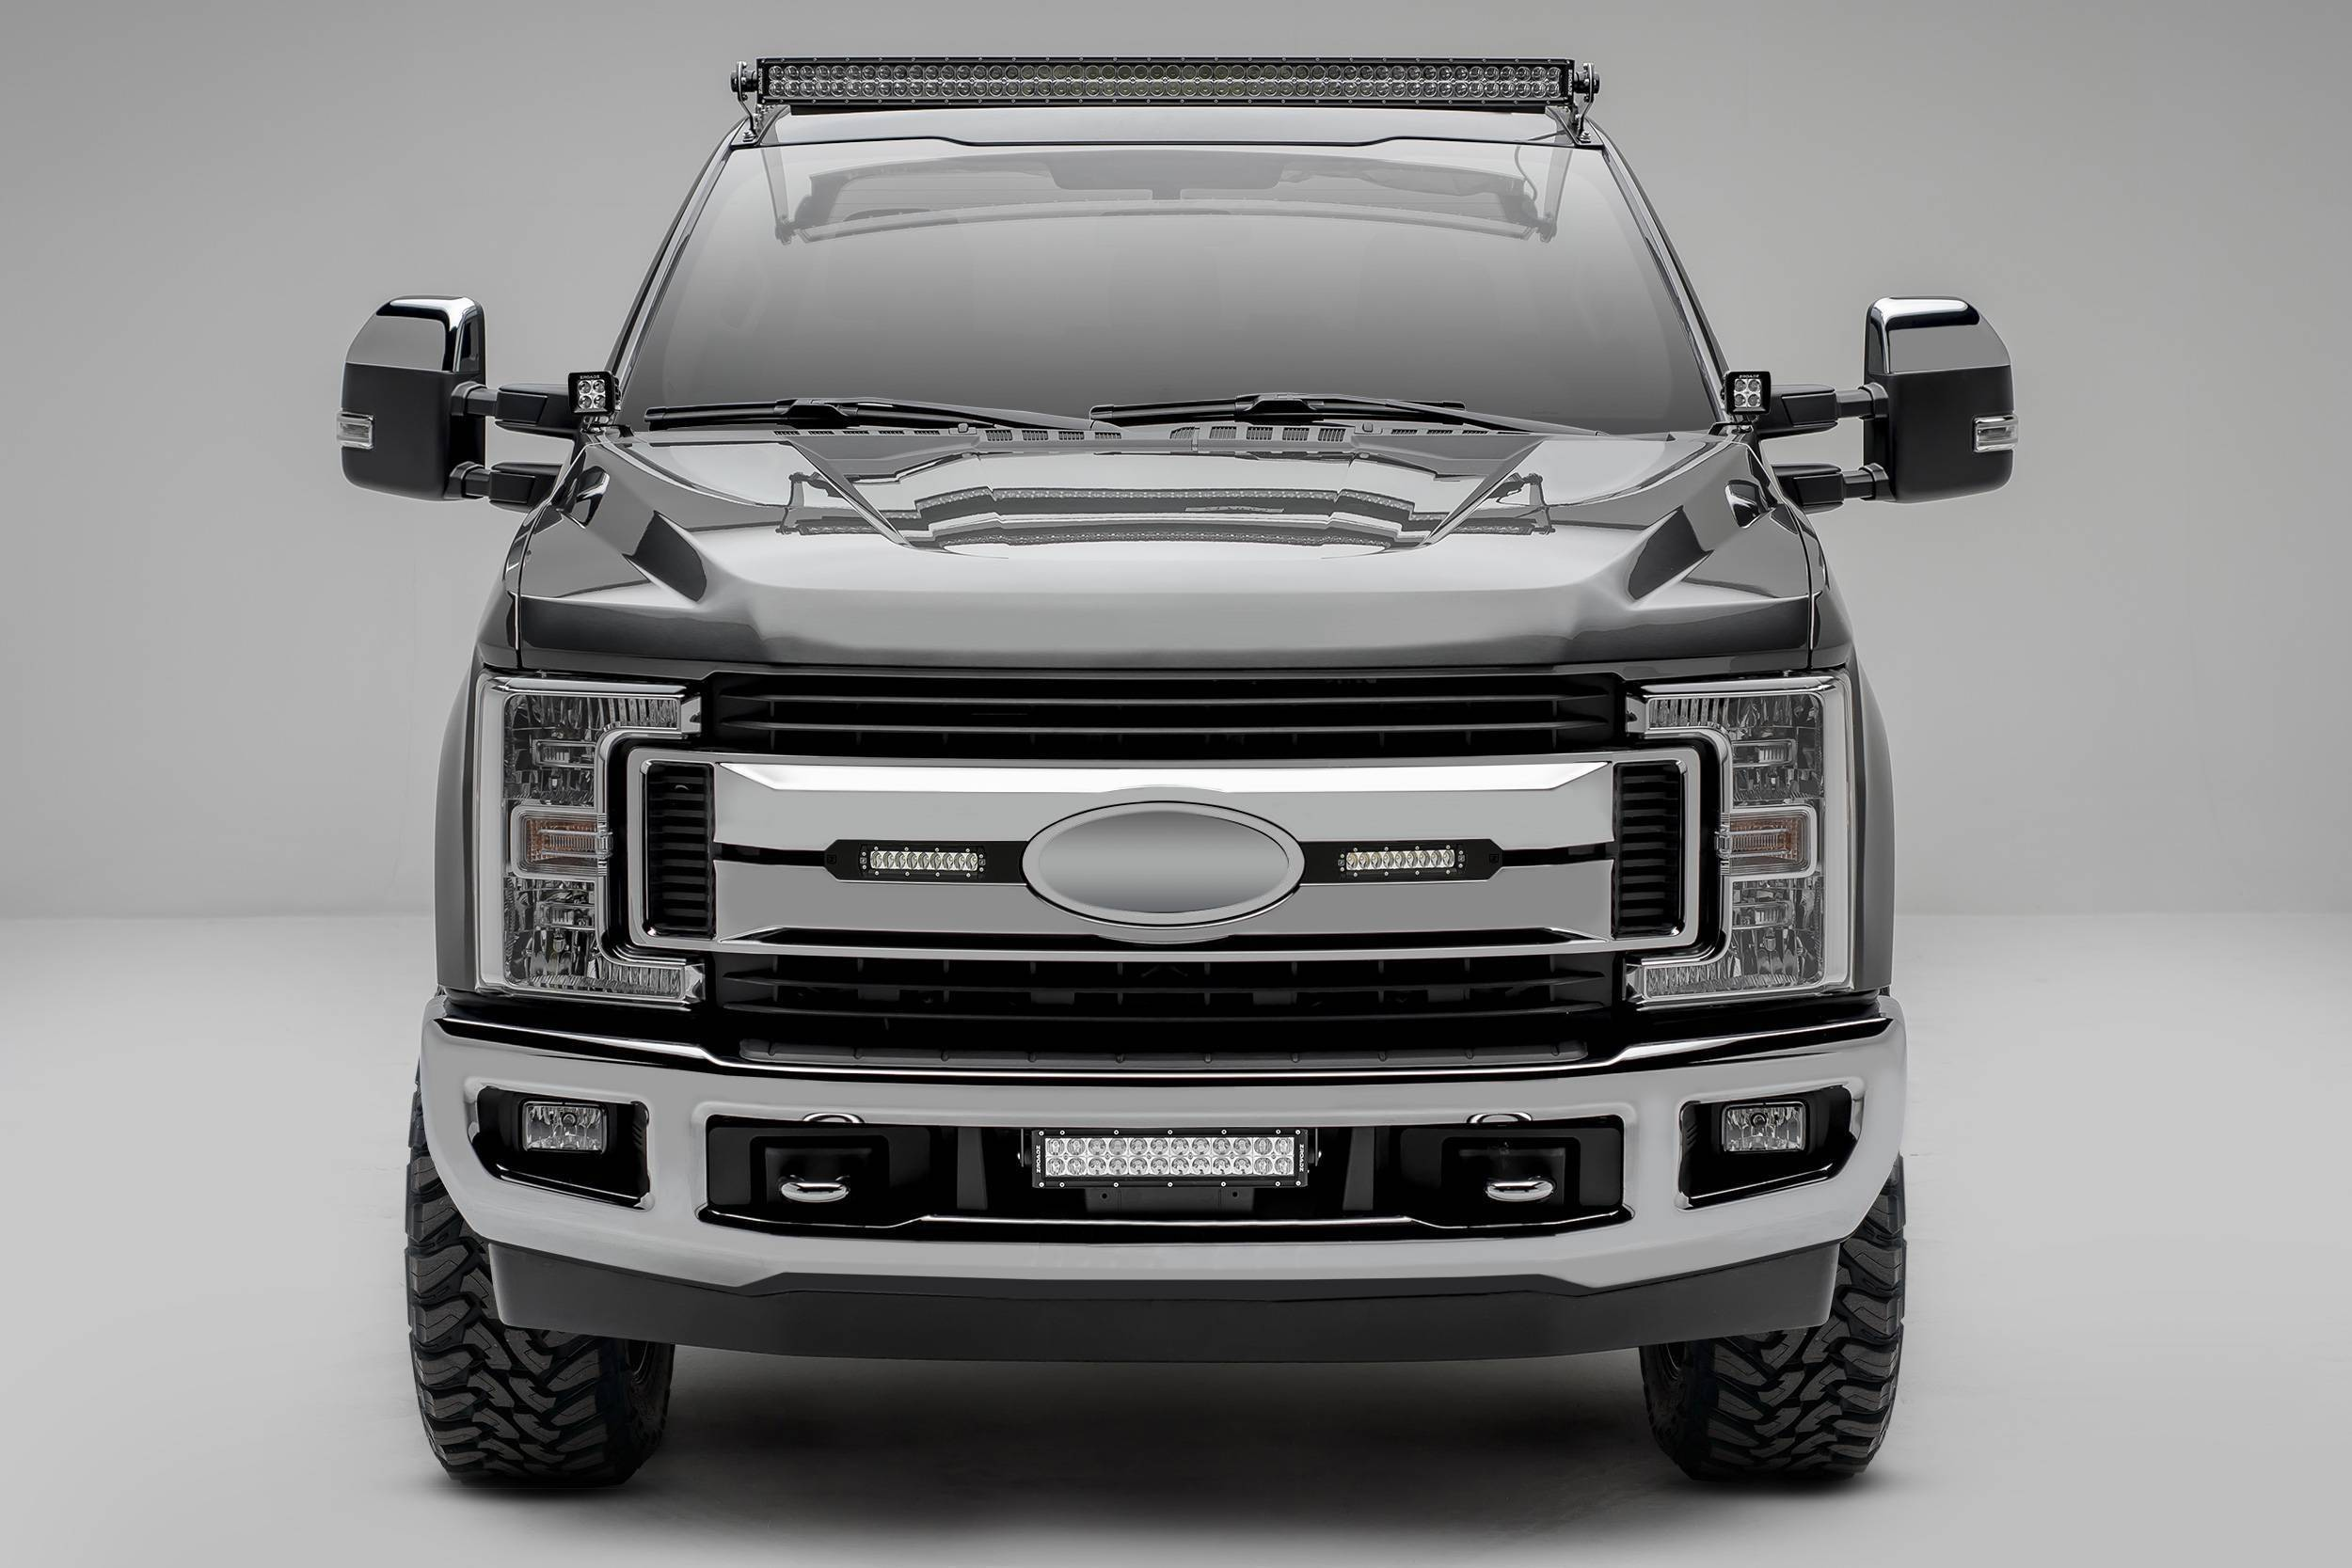 ZROADZ OFF ROAD PRODUCTS - 2017-2019 Ford Super Duty XLT, XL STX OEM Grille LED Kit with (2) 6 Inch LED Straight Single Row Slim Light Bars, Black - PN #Z415571-KIT